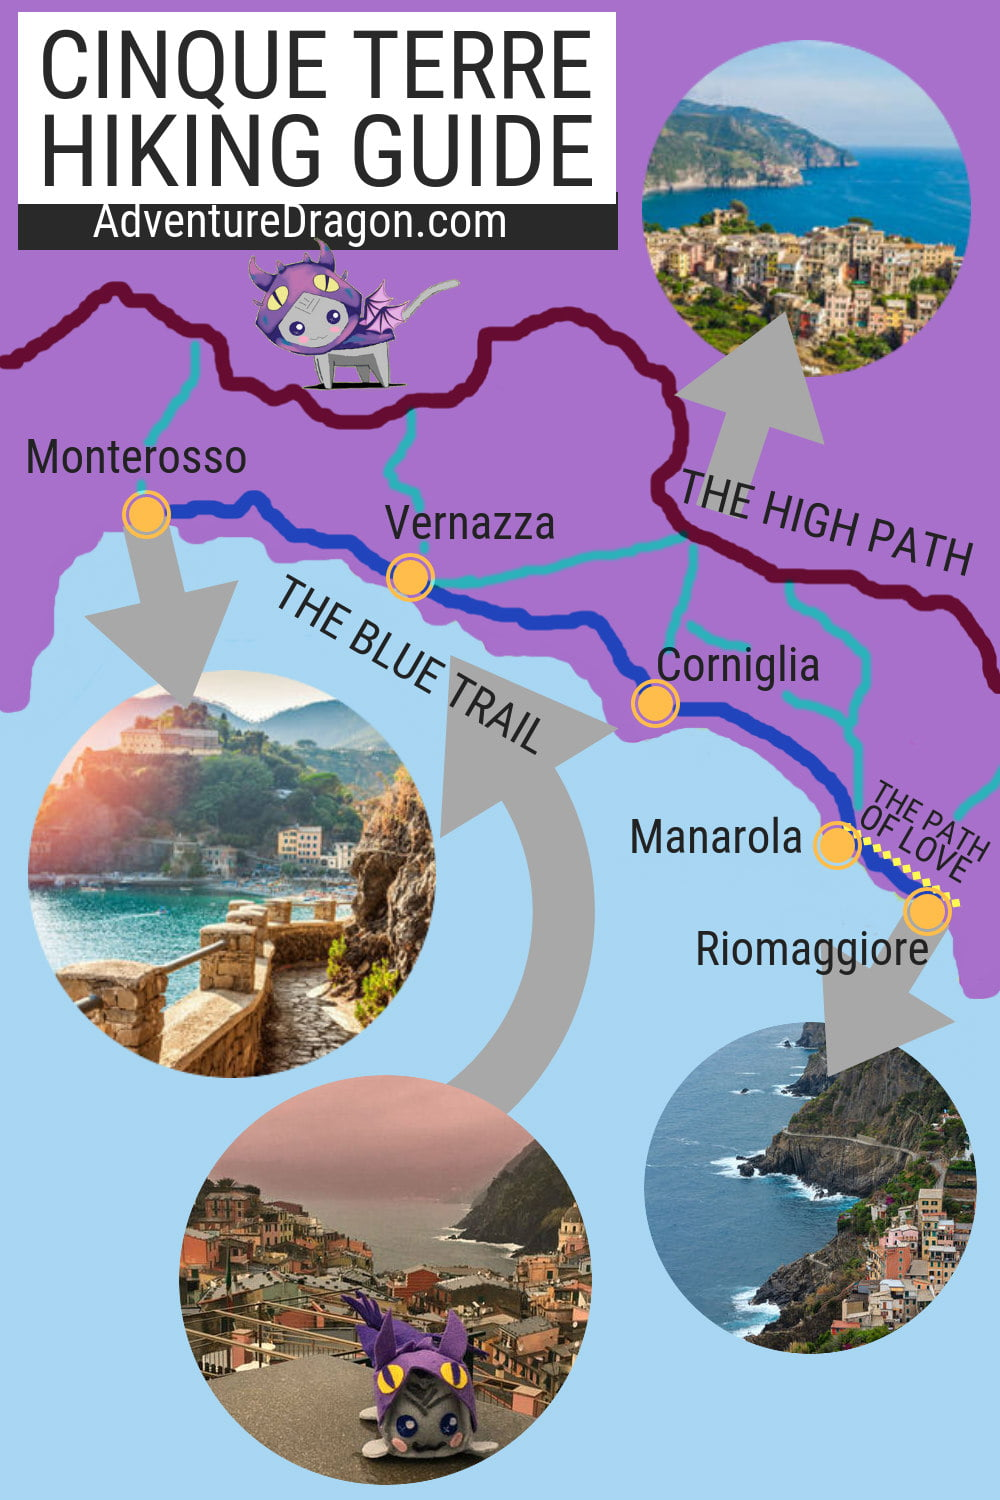 Cinque Terre Hiking Map | Cinque Terre Trail Map | Italy Travel Guide